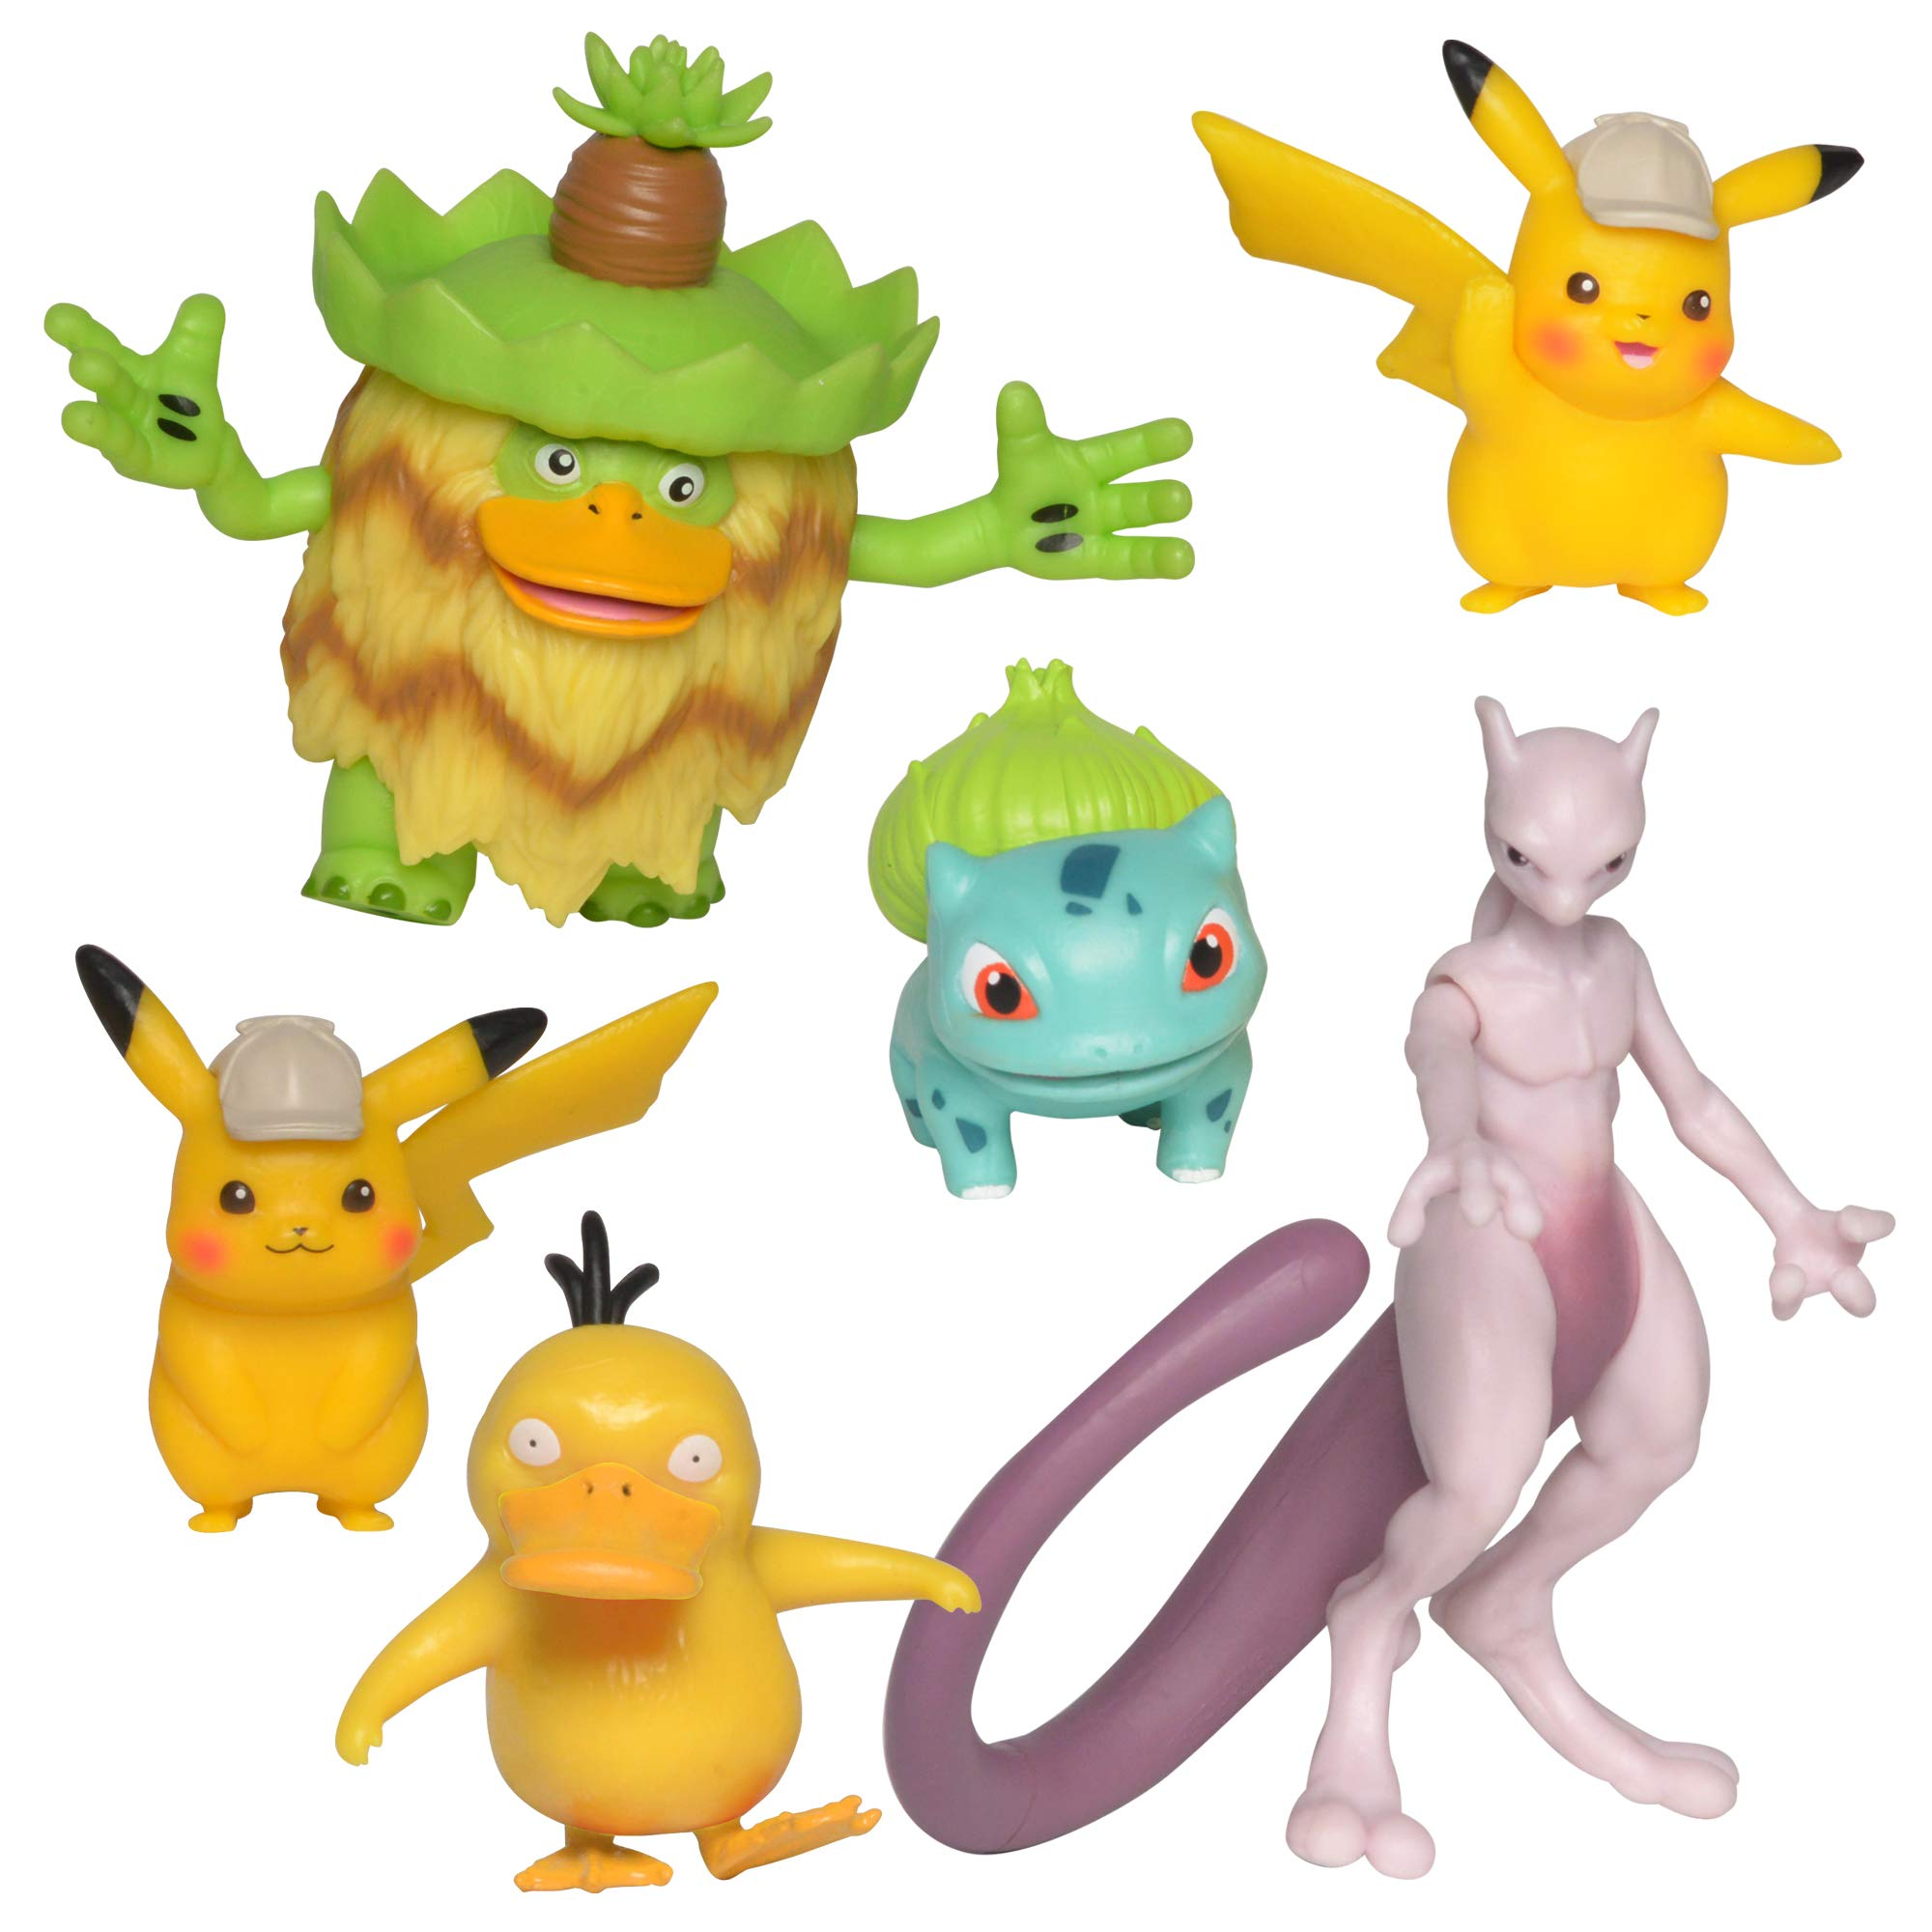 Detective Pikachu Battle Action Figure 6-Pack - Includes two 2'' Detective Pikachu Figures, 2'' Psyduck, 2'' Bulbasaur, 3'' Mewtwo, and 3'' Ludicolo